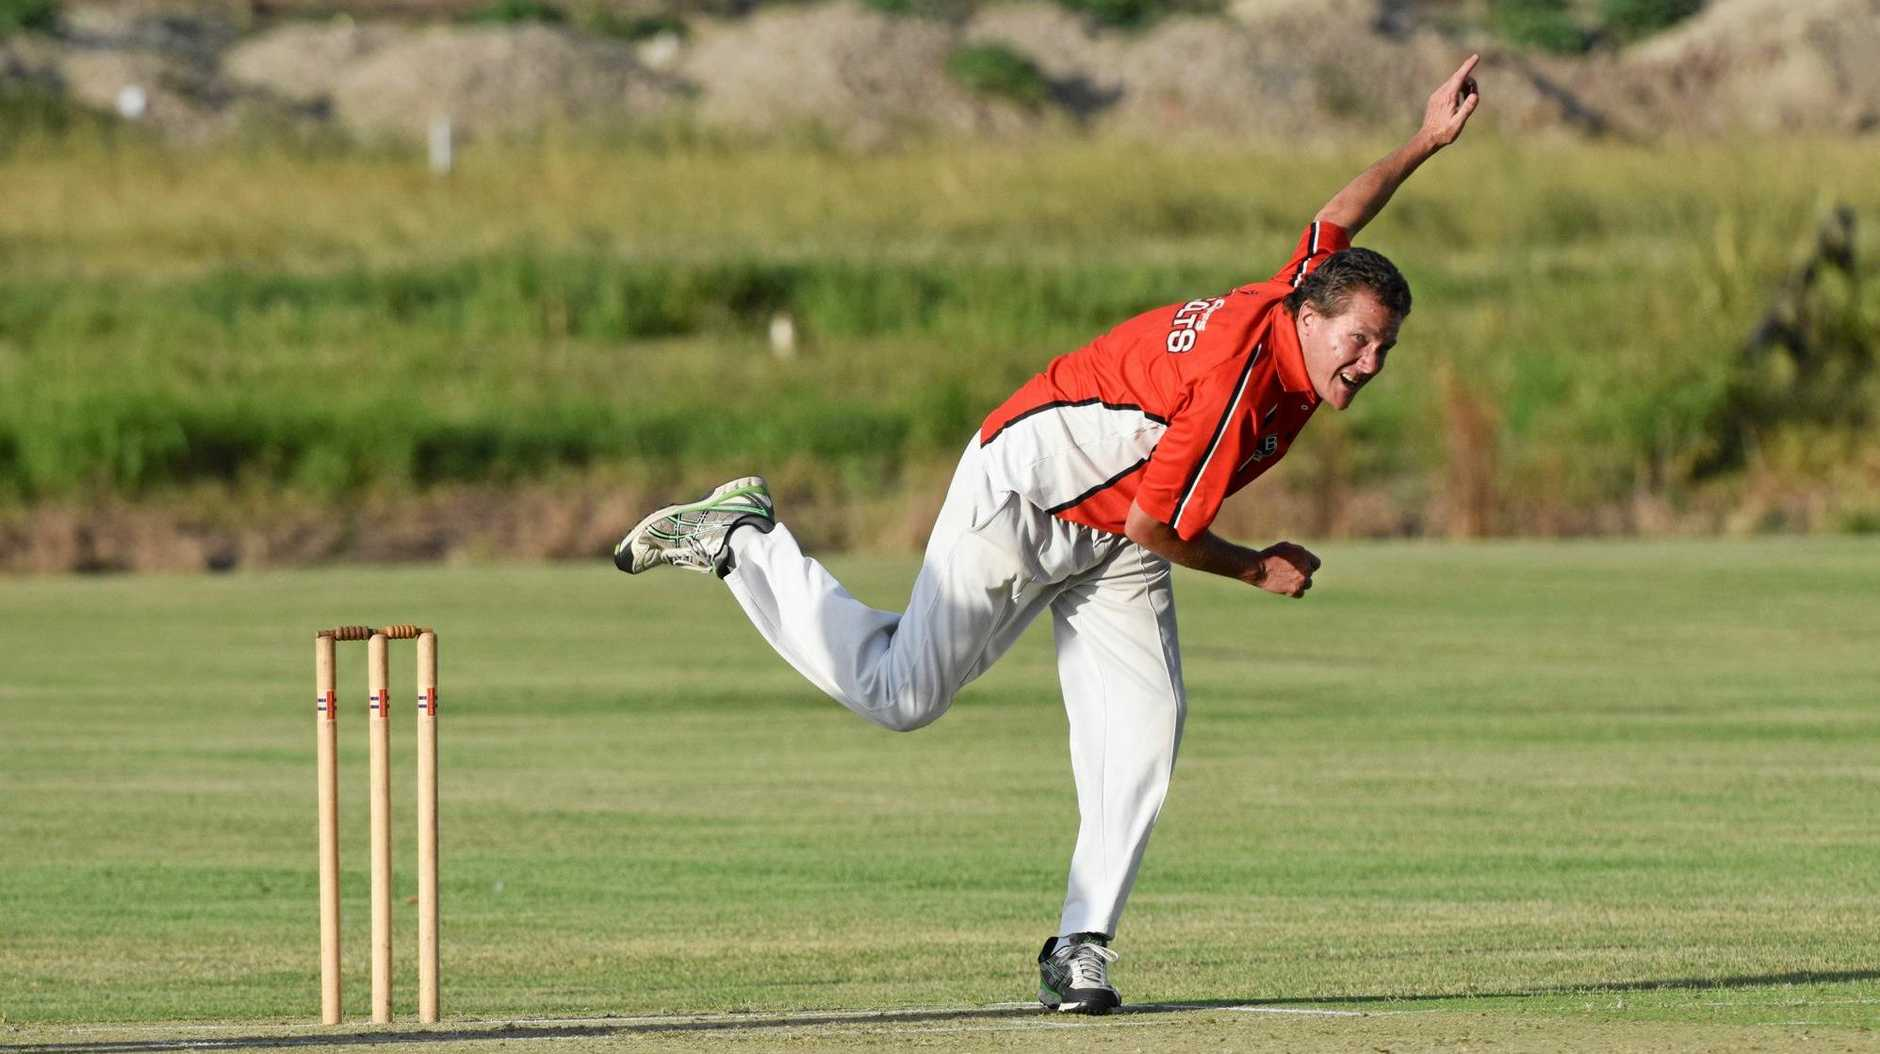 LEADING BY EXAMPLE: Coffs Colts Red captain Matt Rose bowled a handy spell on Thursday night against Northern Districts.